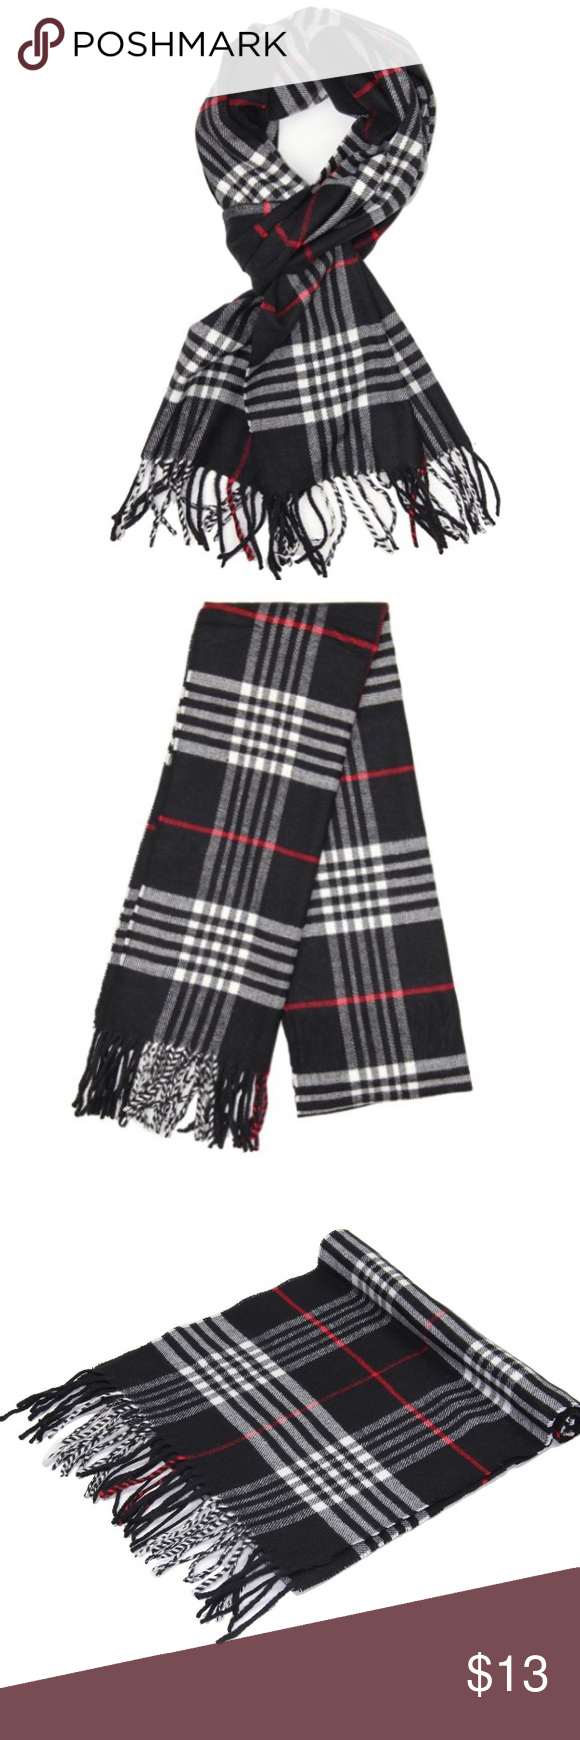 """Classic Black Cashmere Feel Winter Scarf Classic Black Cashmere Feel Winter Scarf 100% Viscose.  Rectangular Size: APPROX. 12""""W x 72""""L with fringes, 3"""" fringes at both ends. Unisex designs, perfect gift for men or womenPatterned in rich, classic scottish plaid, checked and tartan design DRY CLEAN or HAND WASH, squeeze gently and do NOT twist Accessories Scarves & Wraps"""